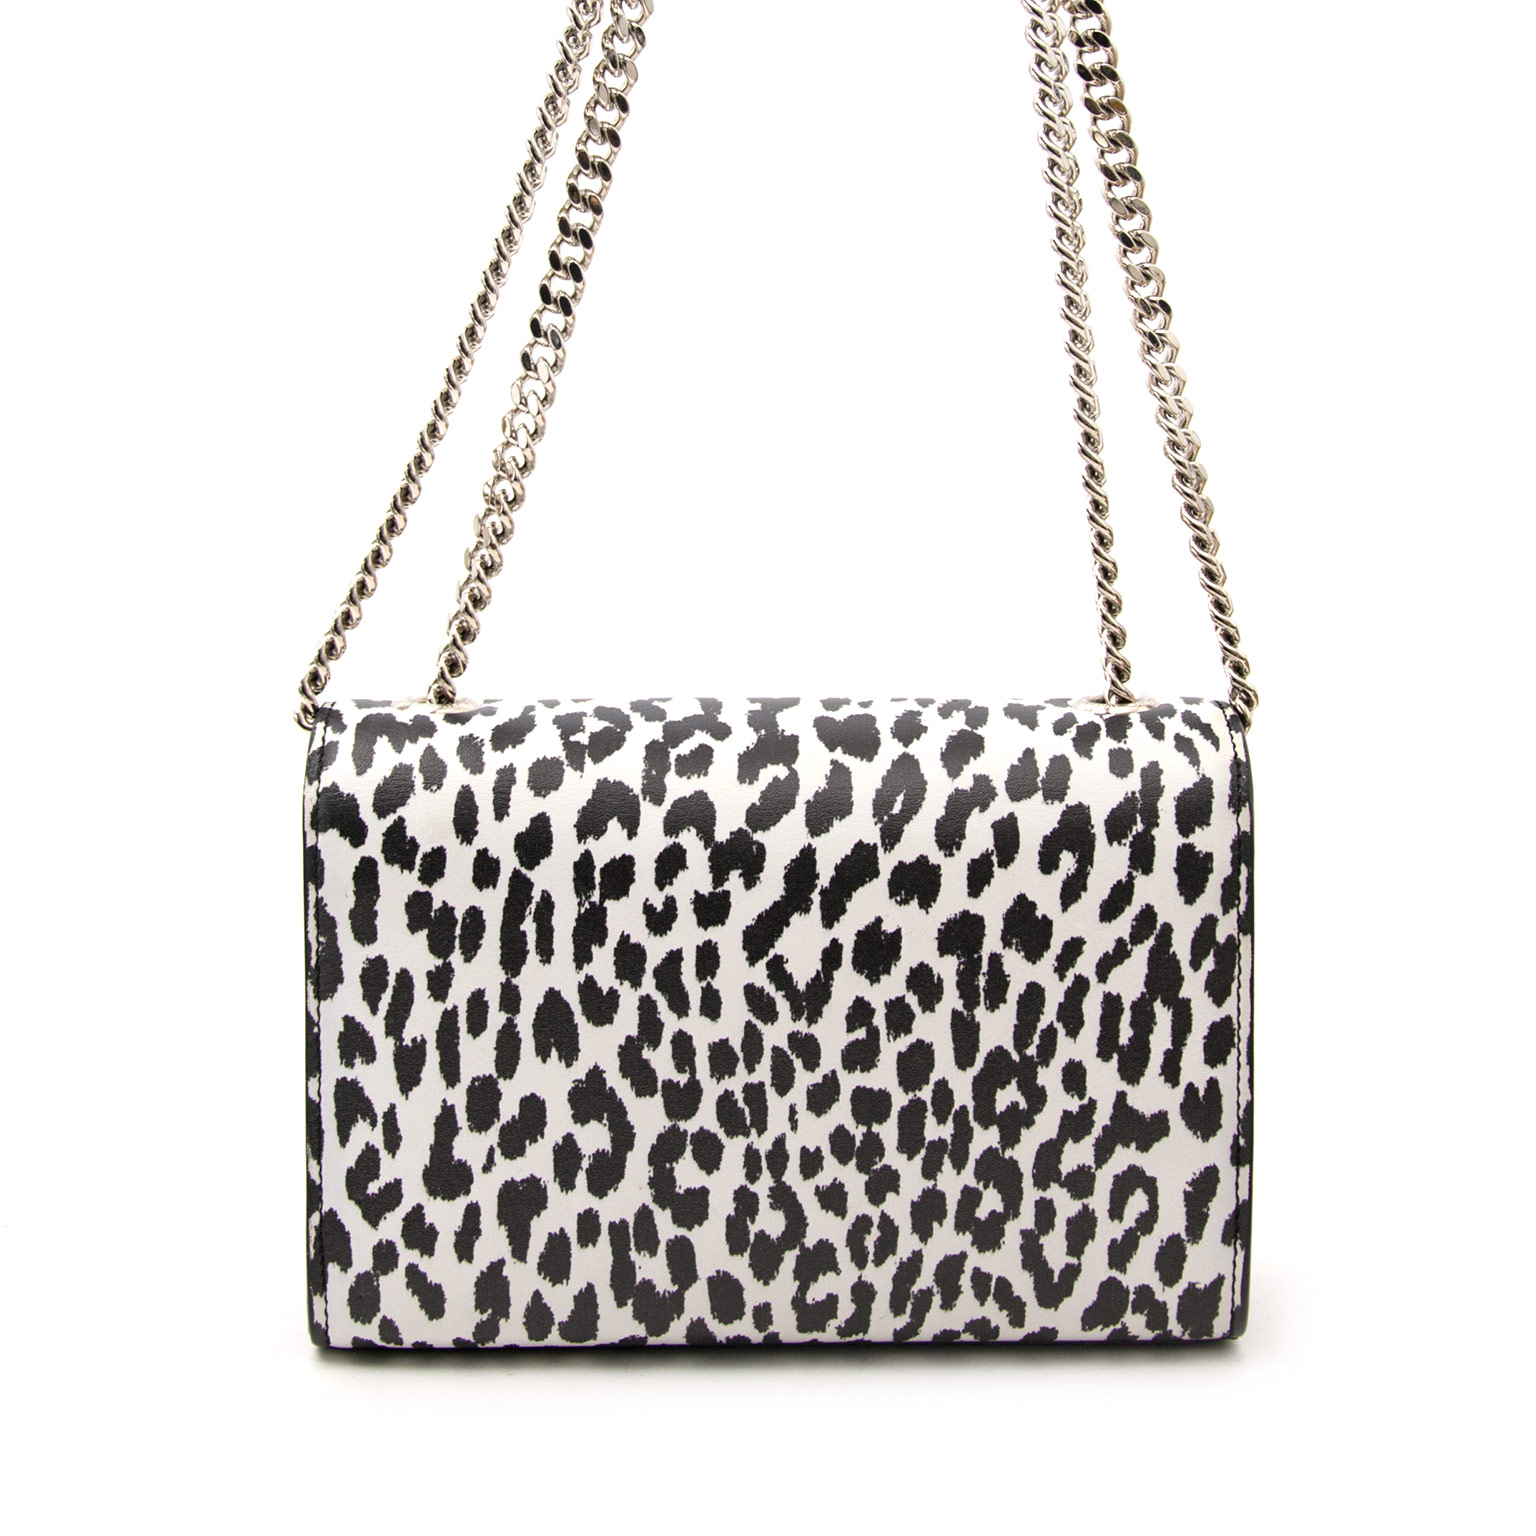 cdd4850c6eef ... Labellov in Antwerpen Are you looking for an authentic Saint Laurent  Mini Monogram Dalmatian Bag   Buy safe and